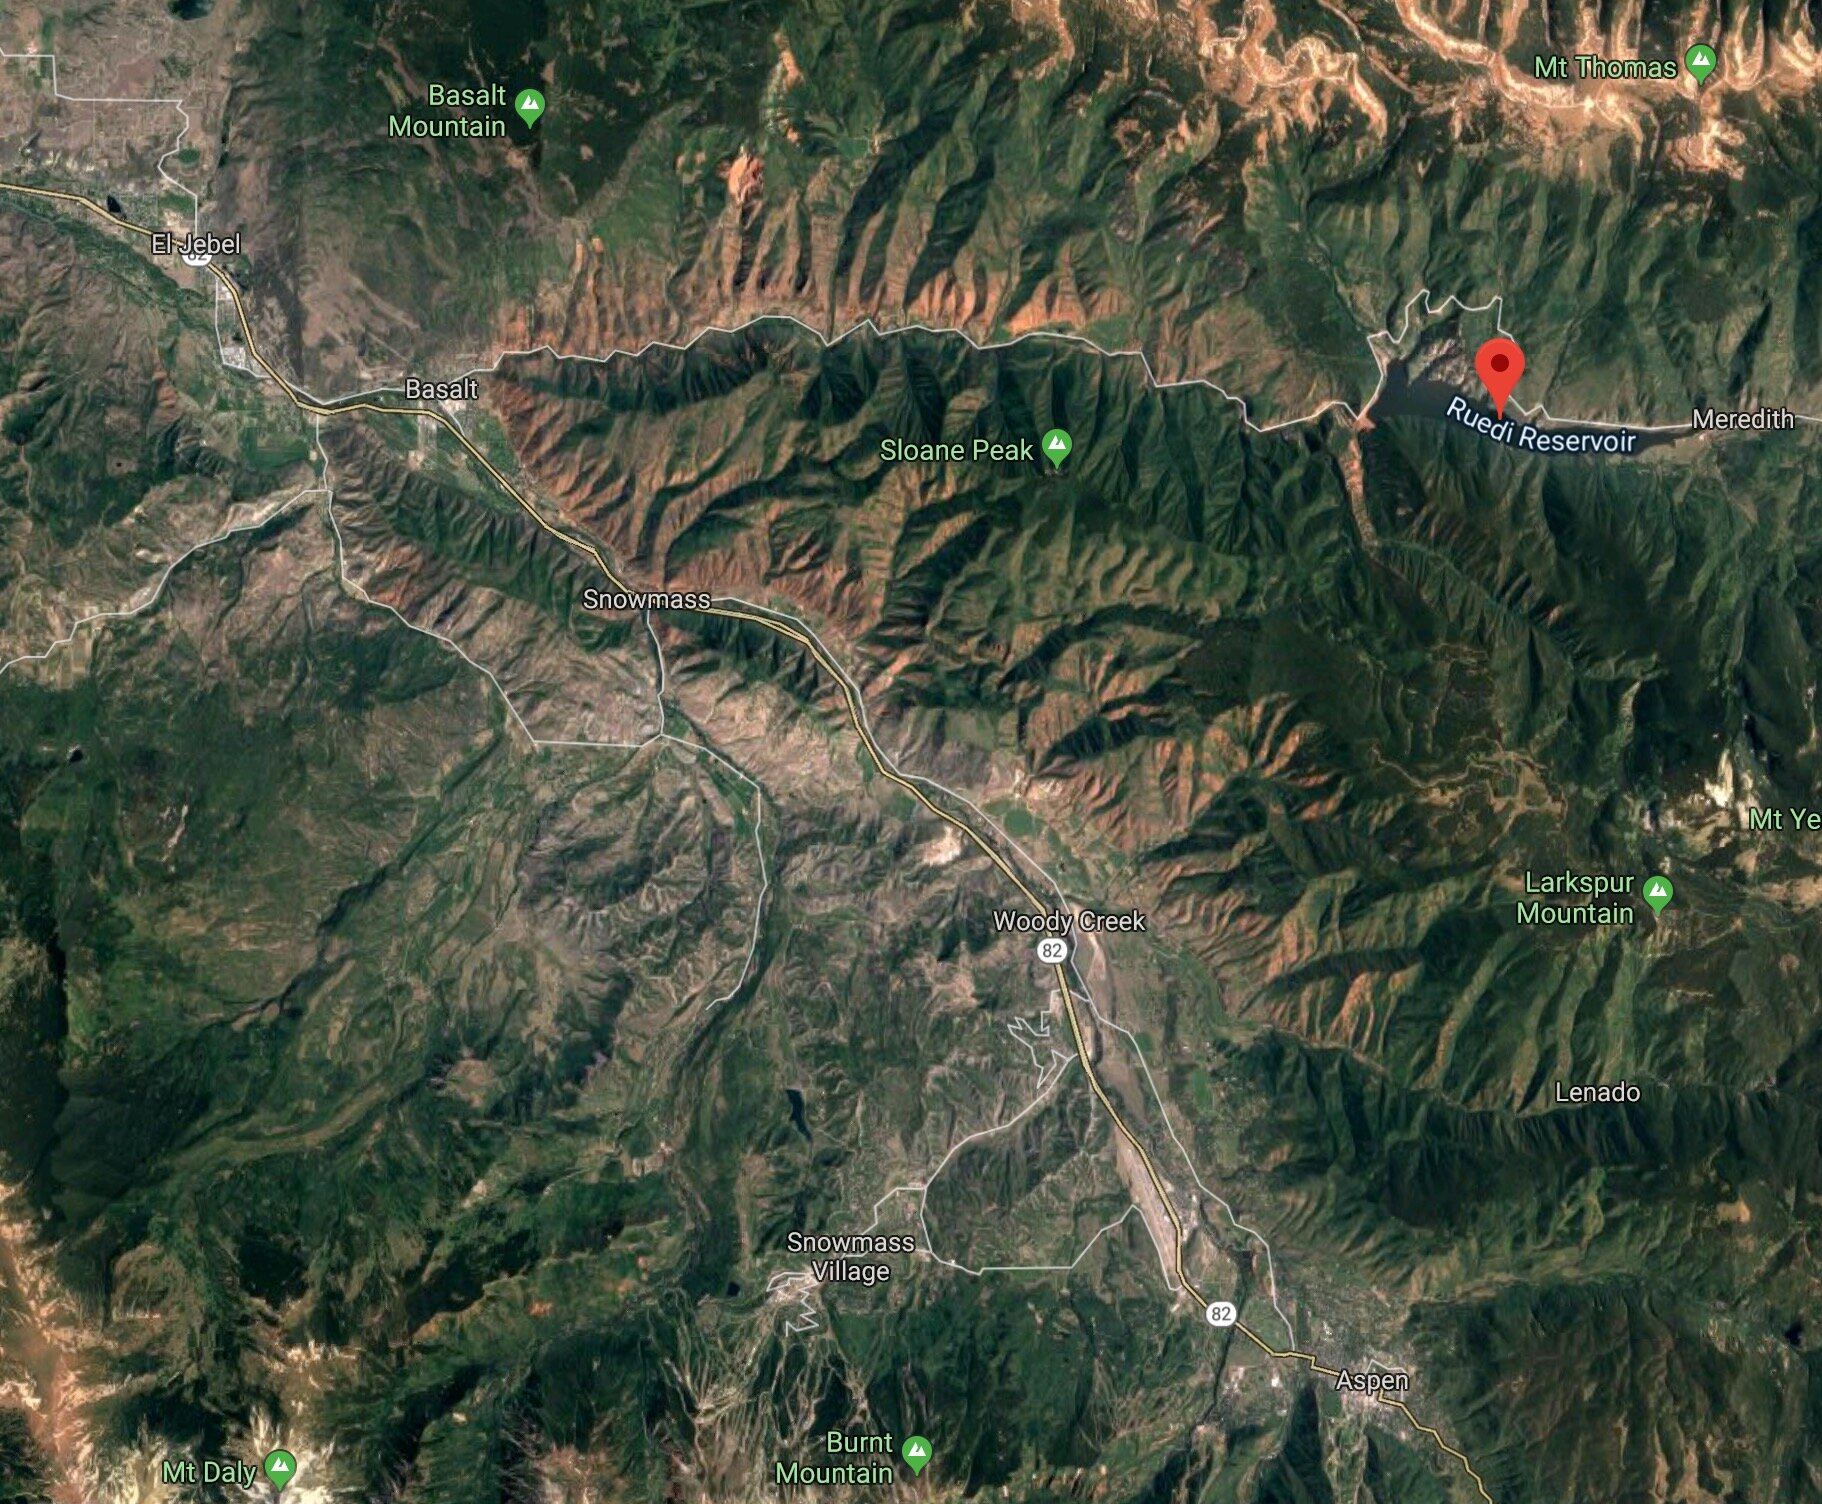 Google Maps Photo shows Ruedi Proximity to Basalt and Aspen